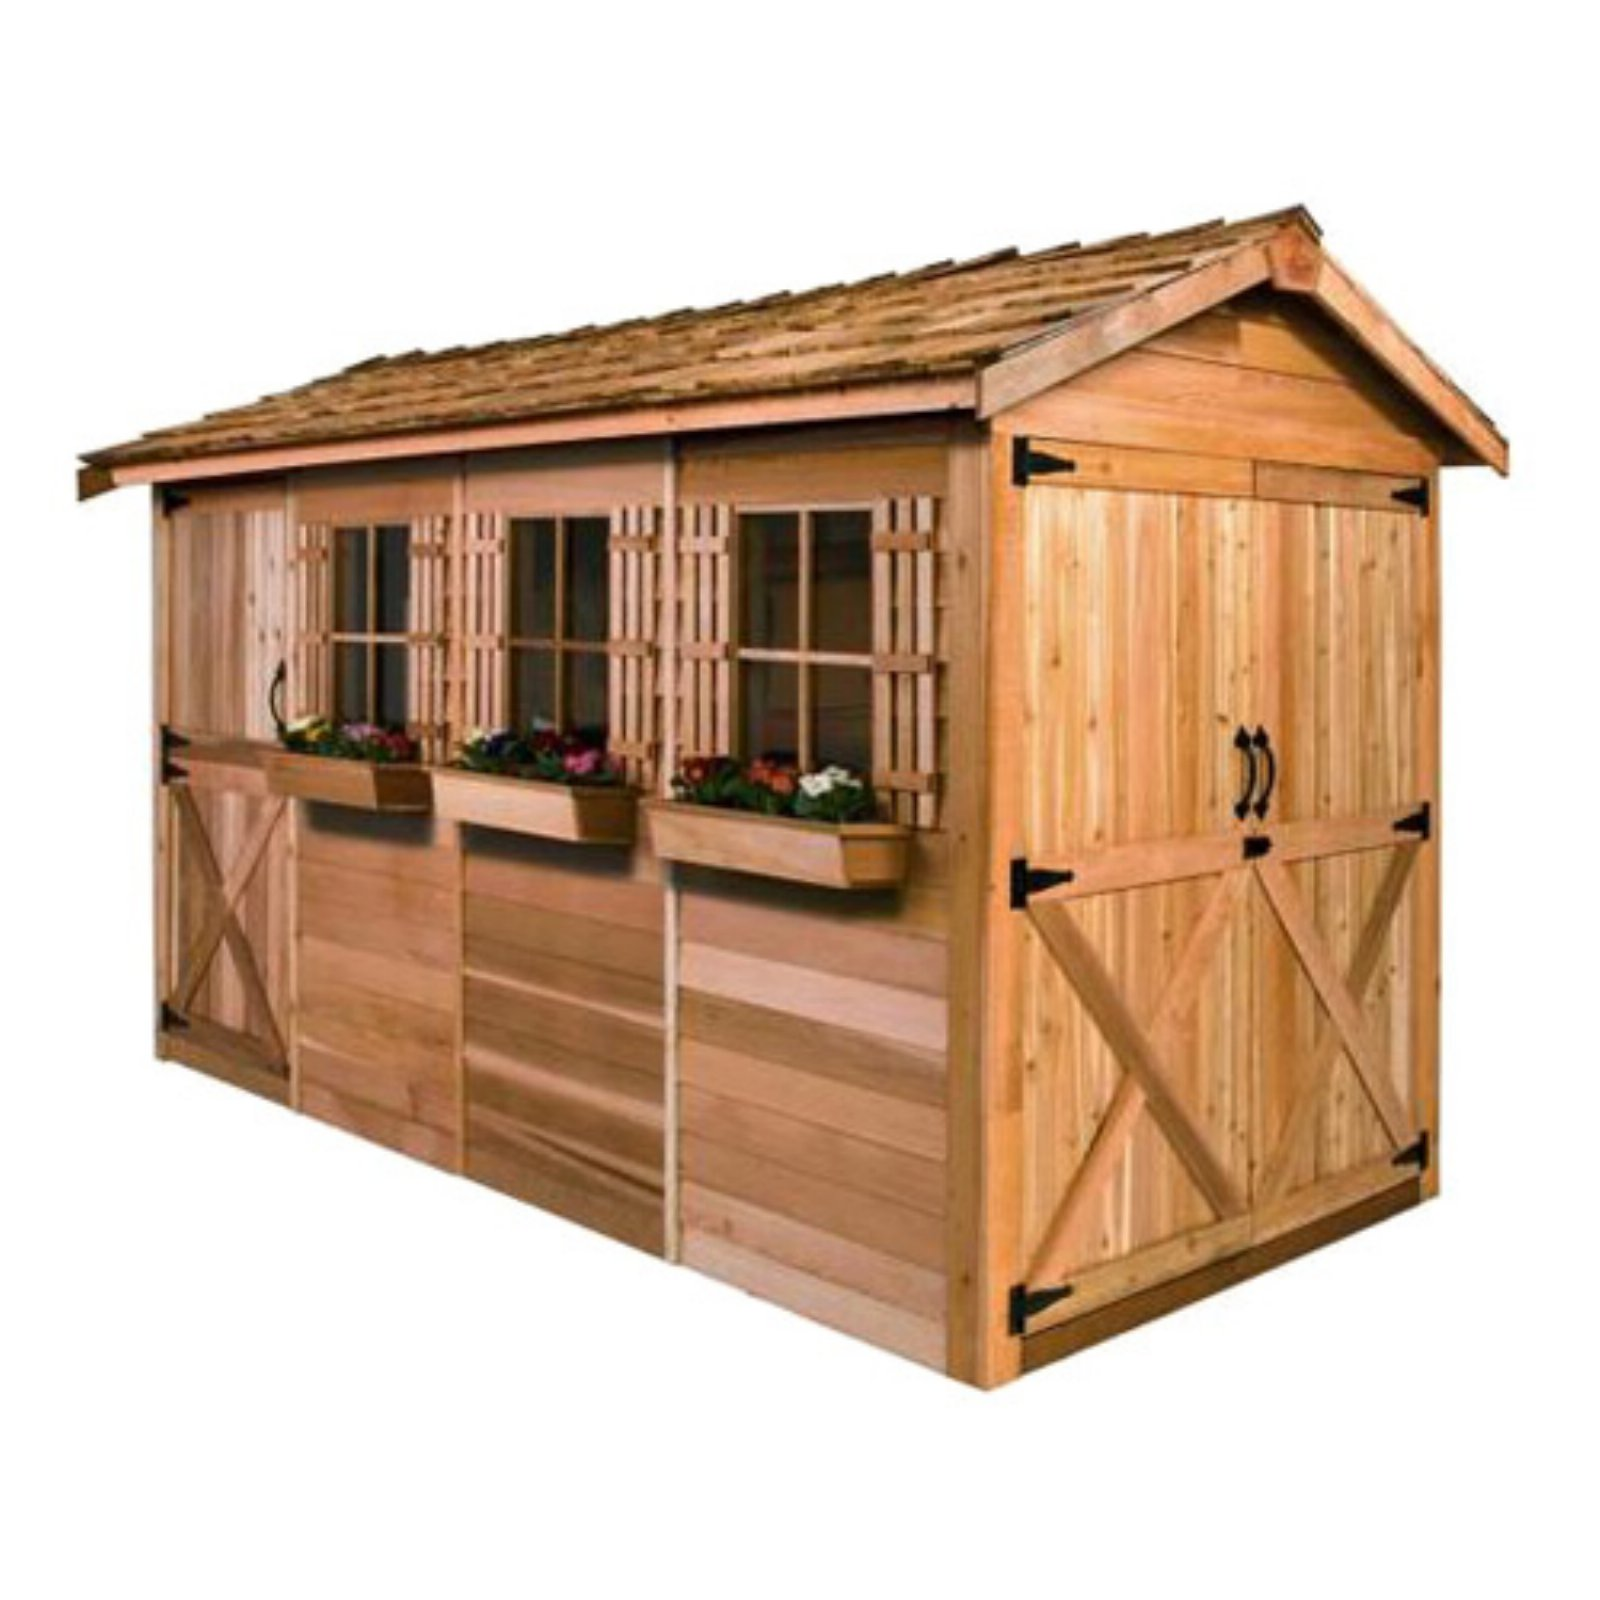 Cedar Shed 12 x 8 ft. Boathouse Garden Shed